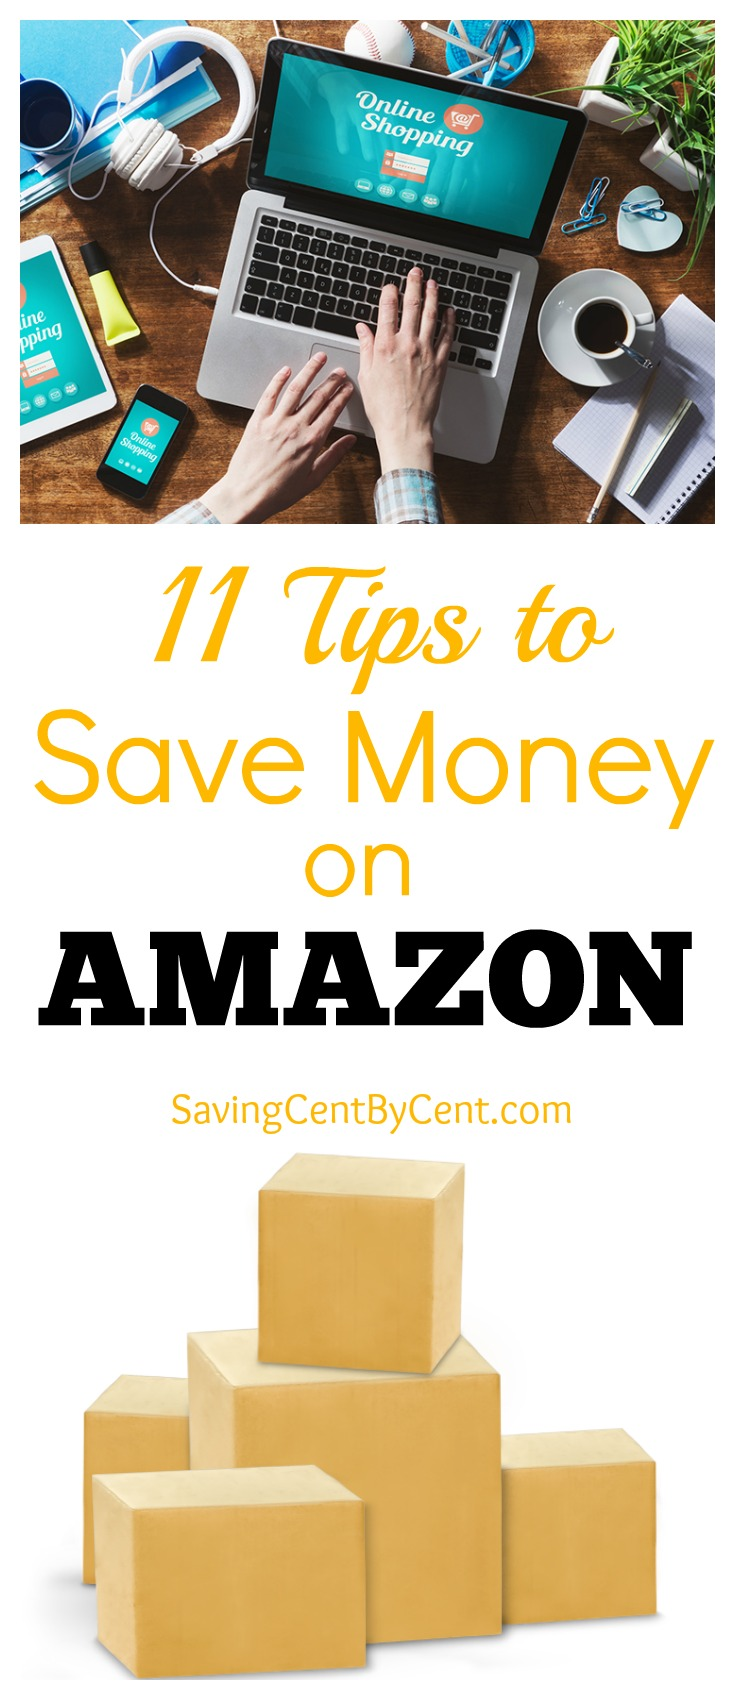 11 Tips to Save Money on Amazon - Saving Cent by Cent